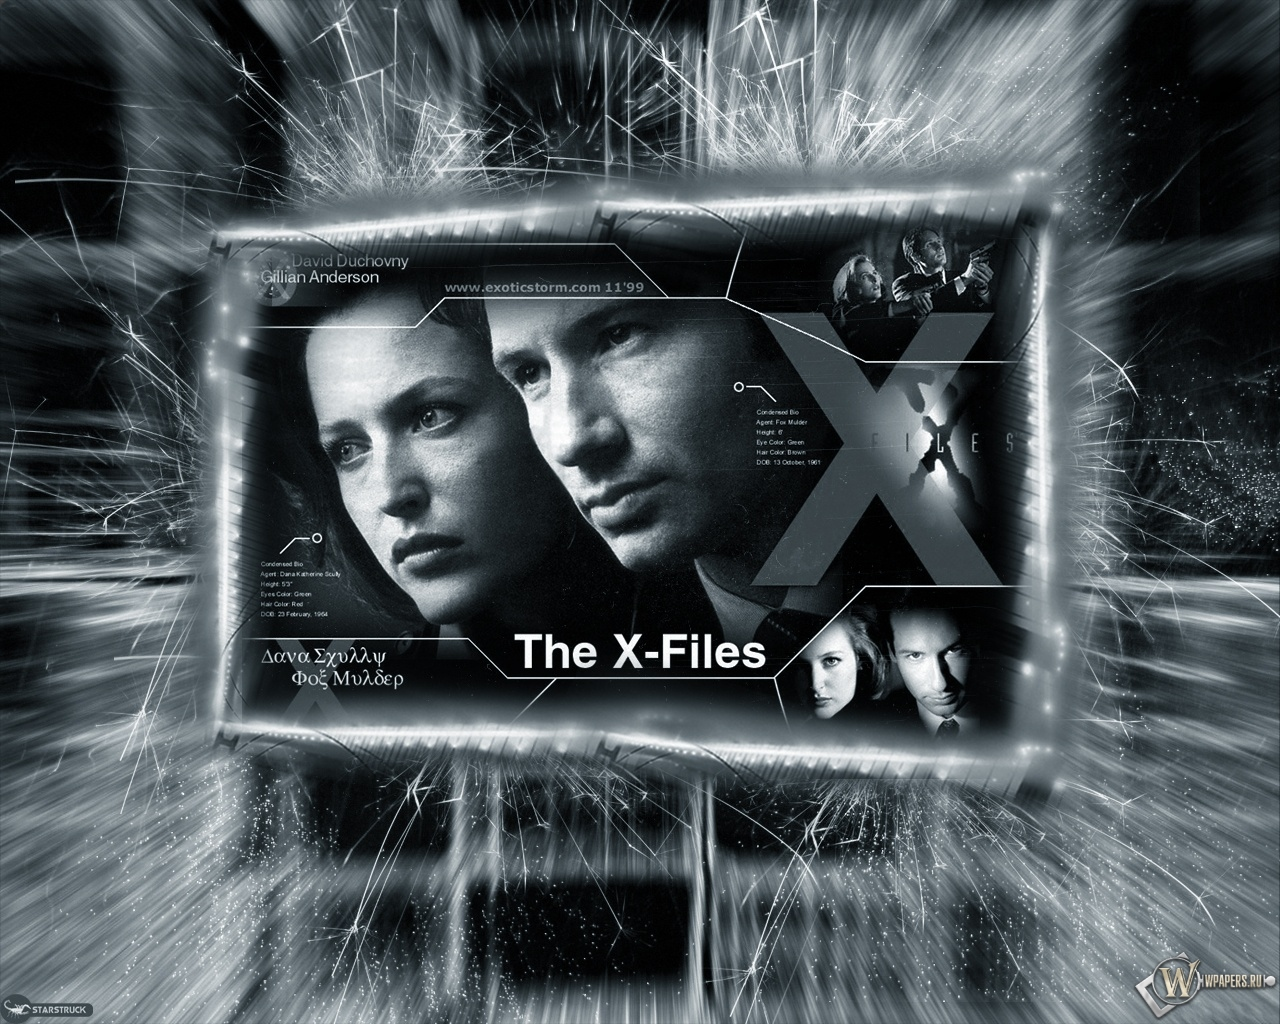 The X-Files 1280x1024